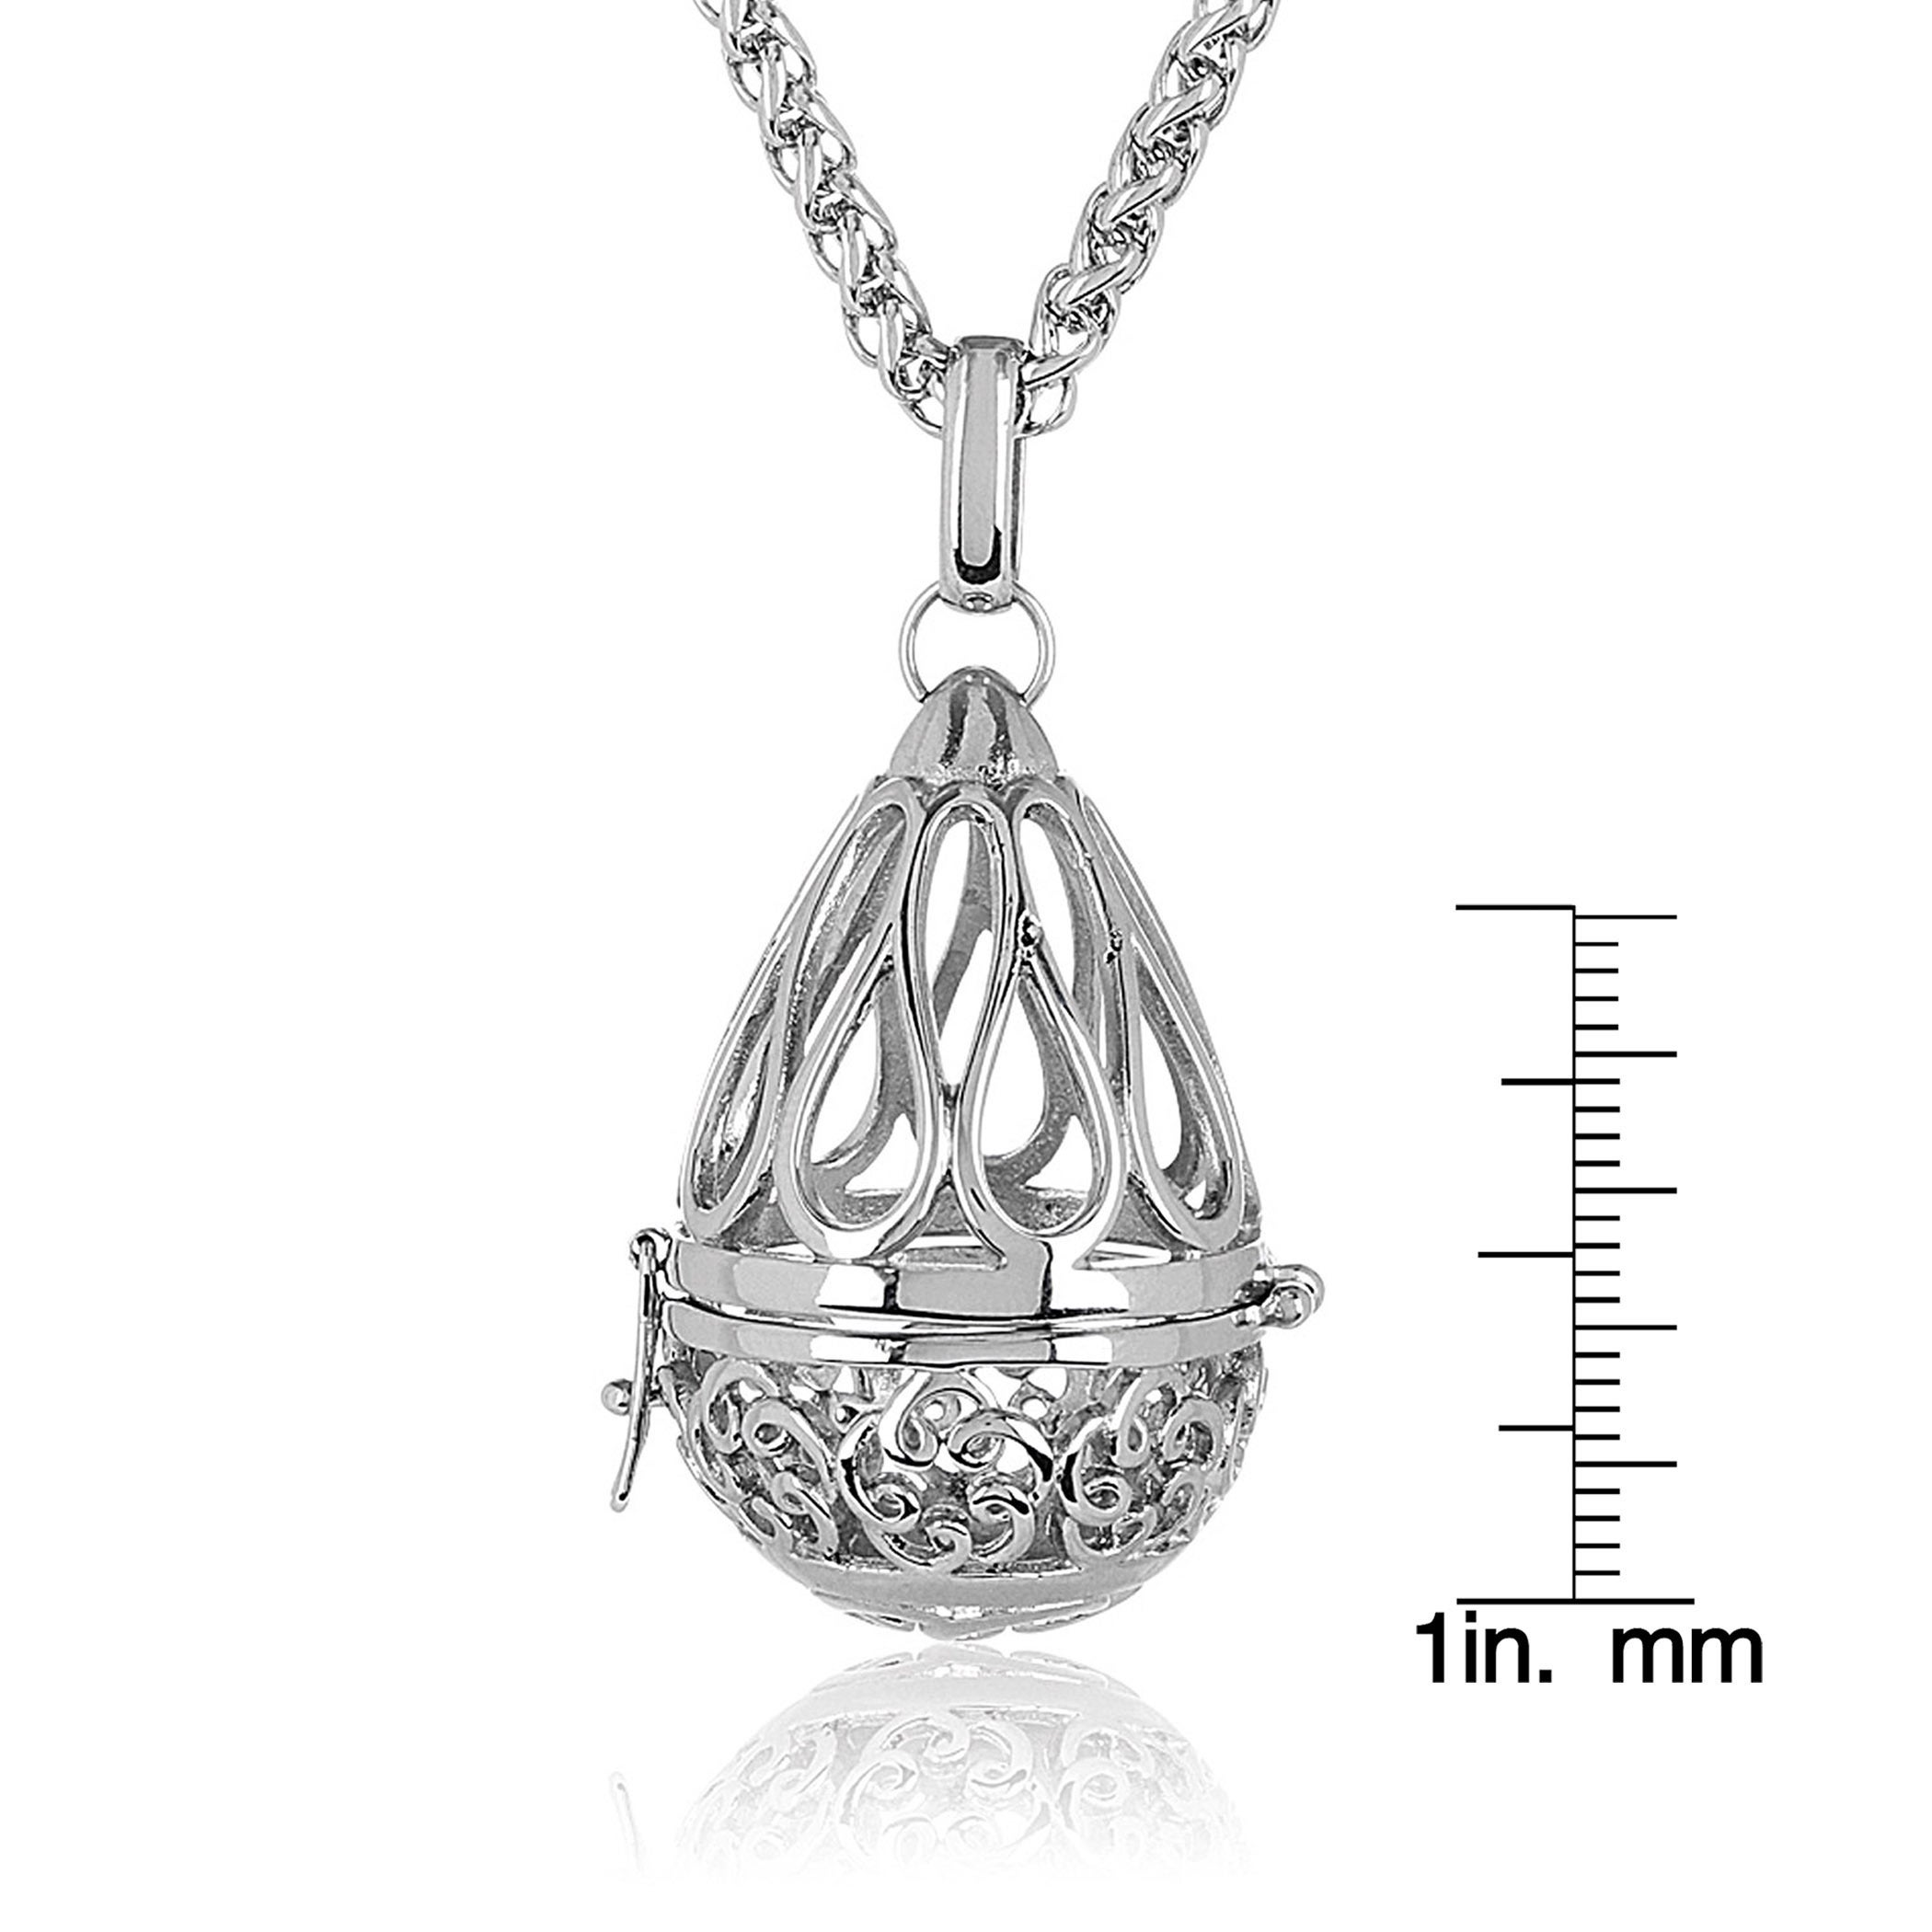 stainless jewelry steel overstock wheat over lockets shipping high pendant necklace floral free elya open chain inch teardrop orders watches product polish locket on